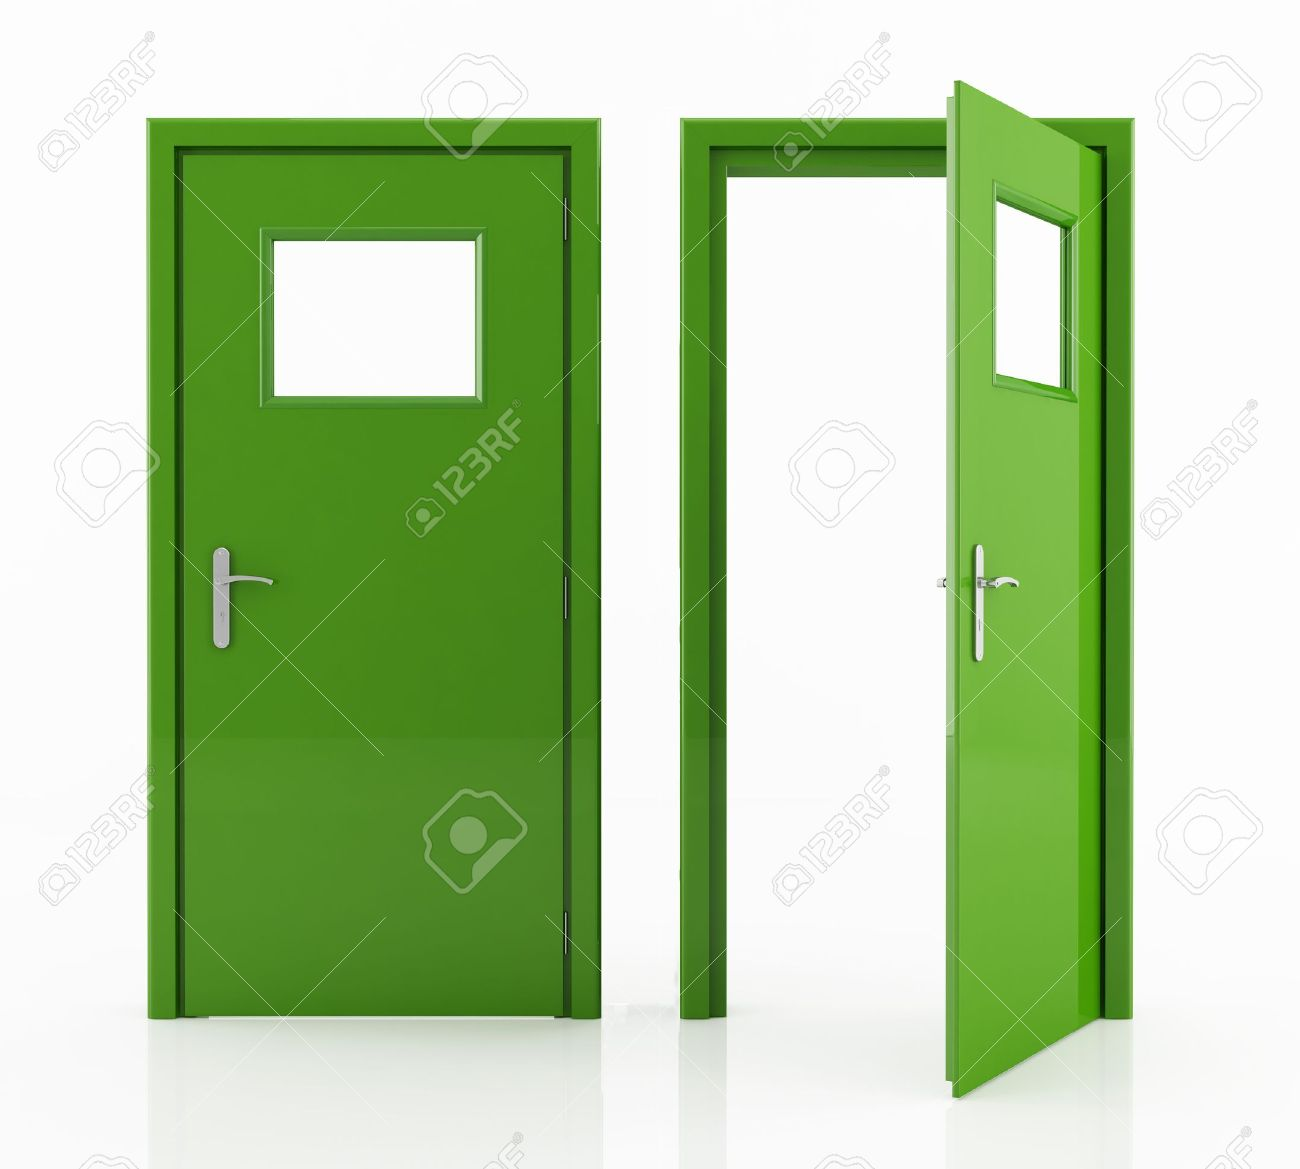 open and closed green door isolated on white - rendering Stock Photo - 8770072